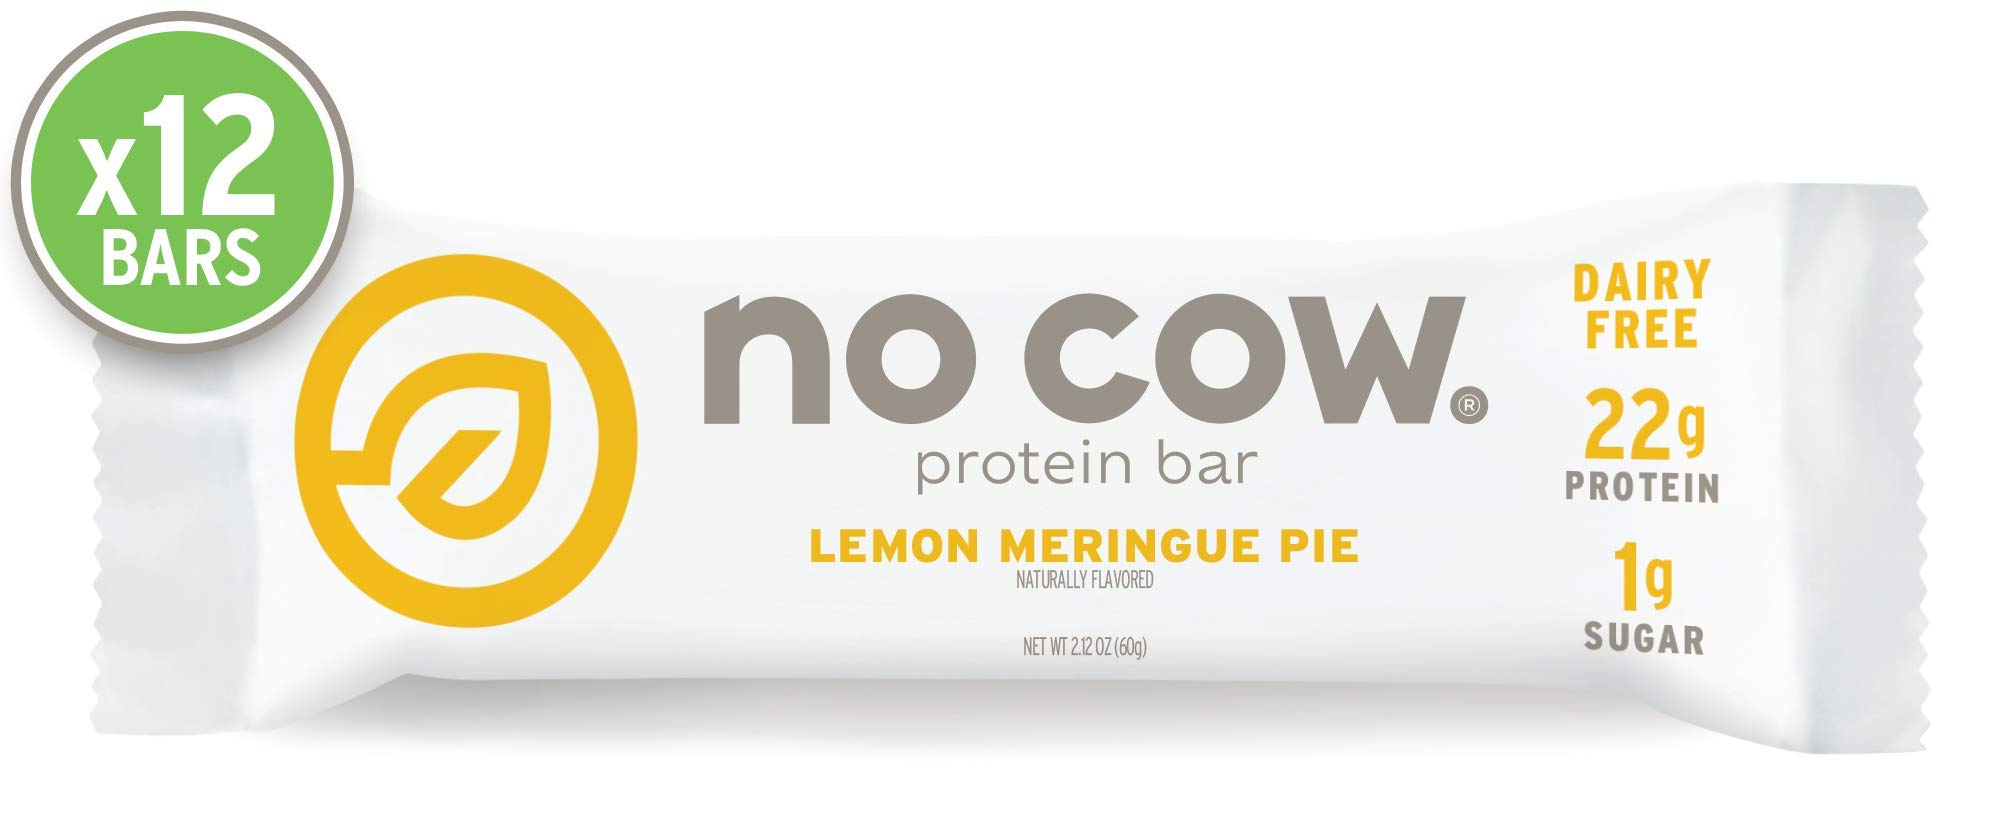 No Cow Protein bar, Lemon Meringue Pie, 22g Plant Based Protein, Keto Friendly, Low Sugar, Dairy Free, Gluten Free, Vegan, High Fiber, Non-GMO, 12Count by No Cow